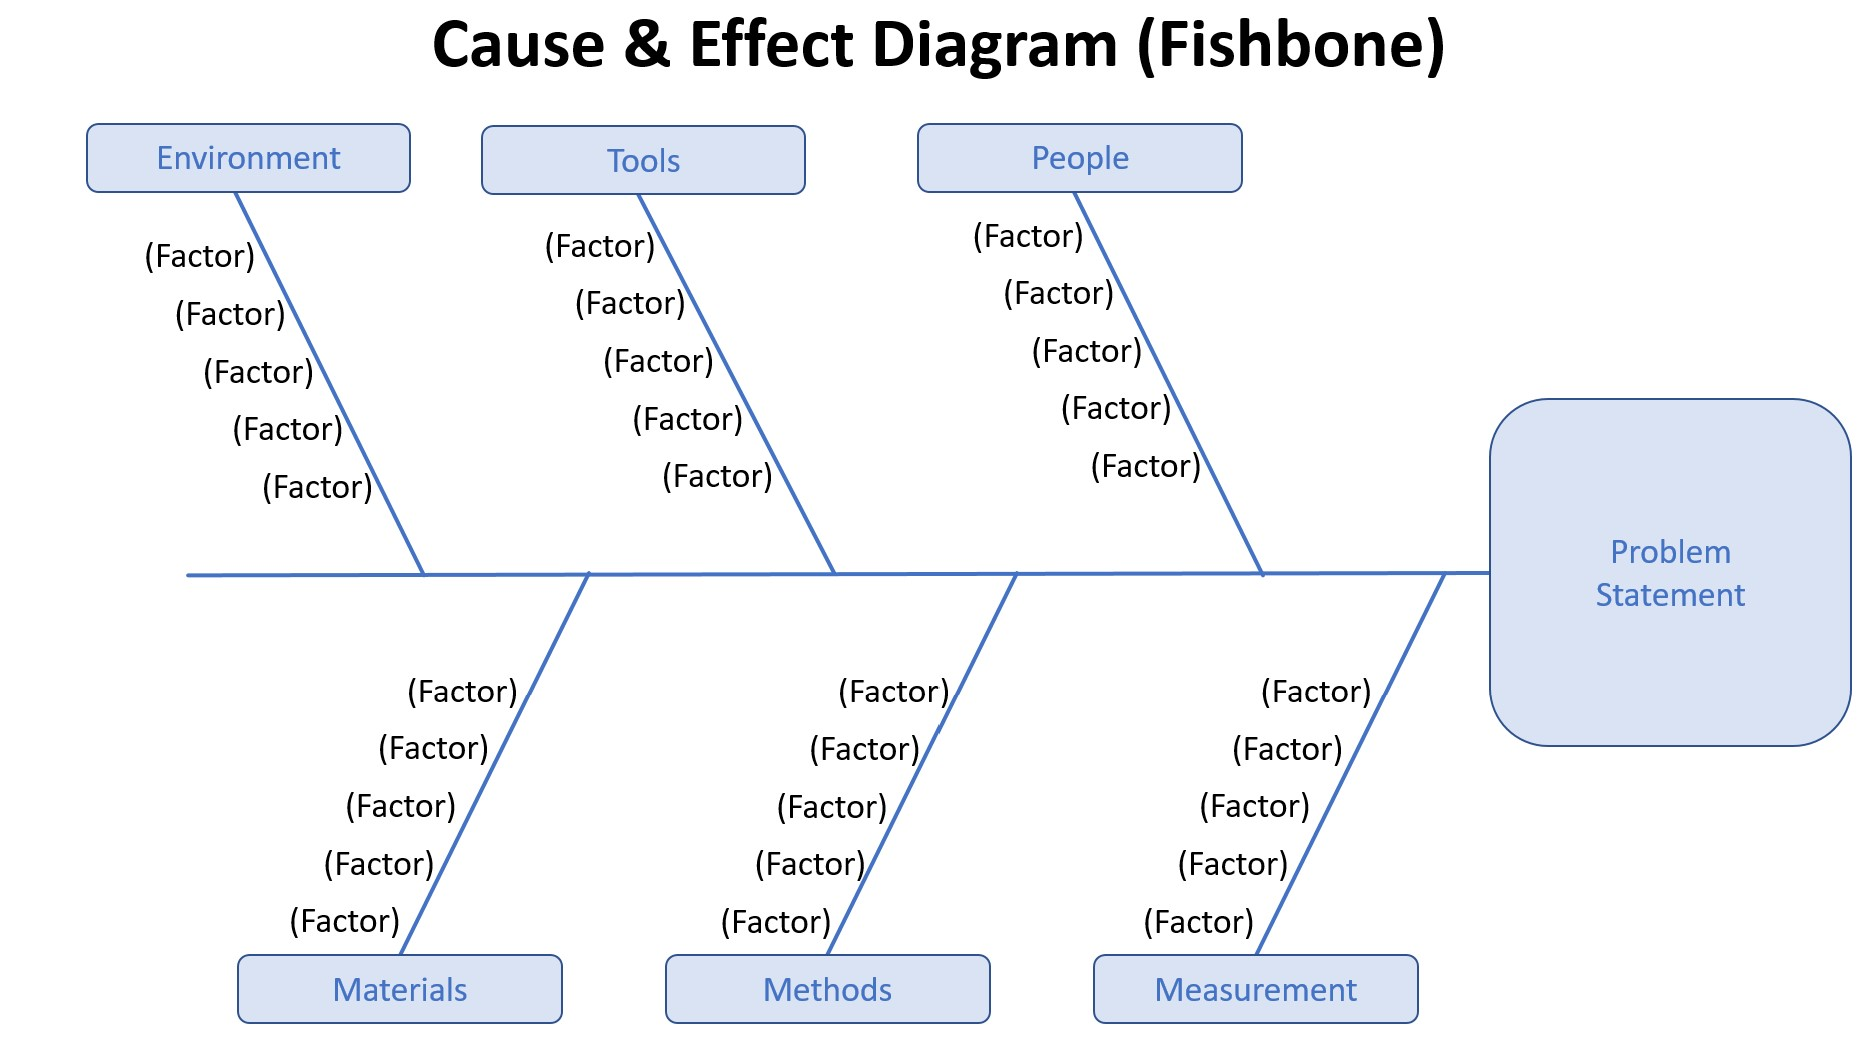 Cause & Effect Diagram (Fishbone)